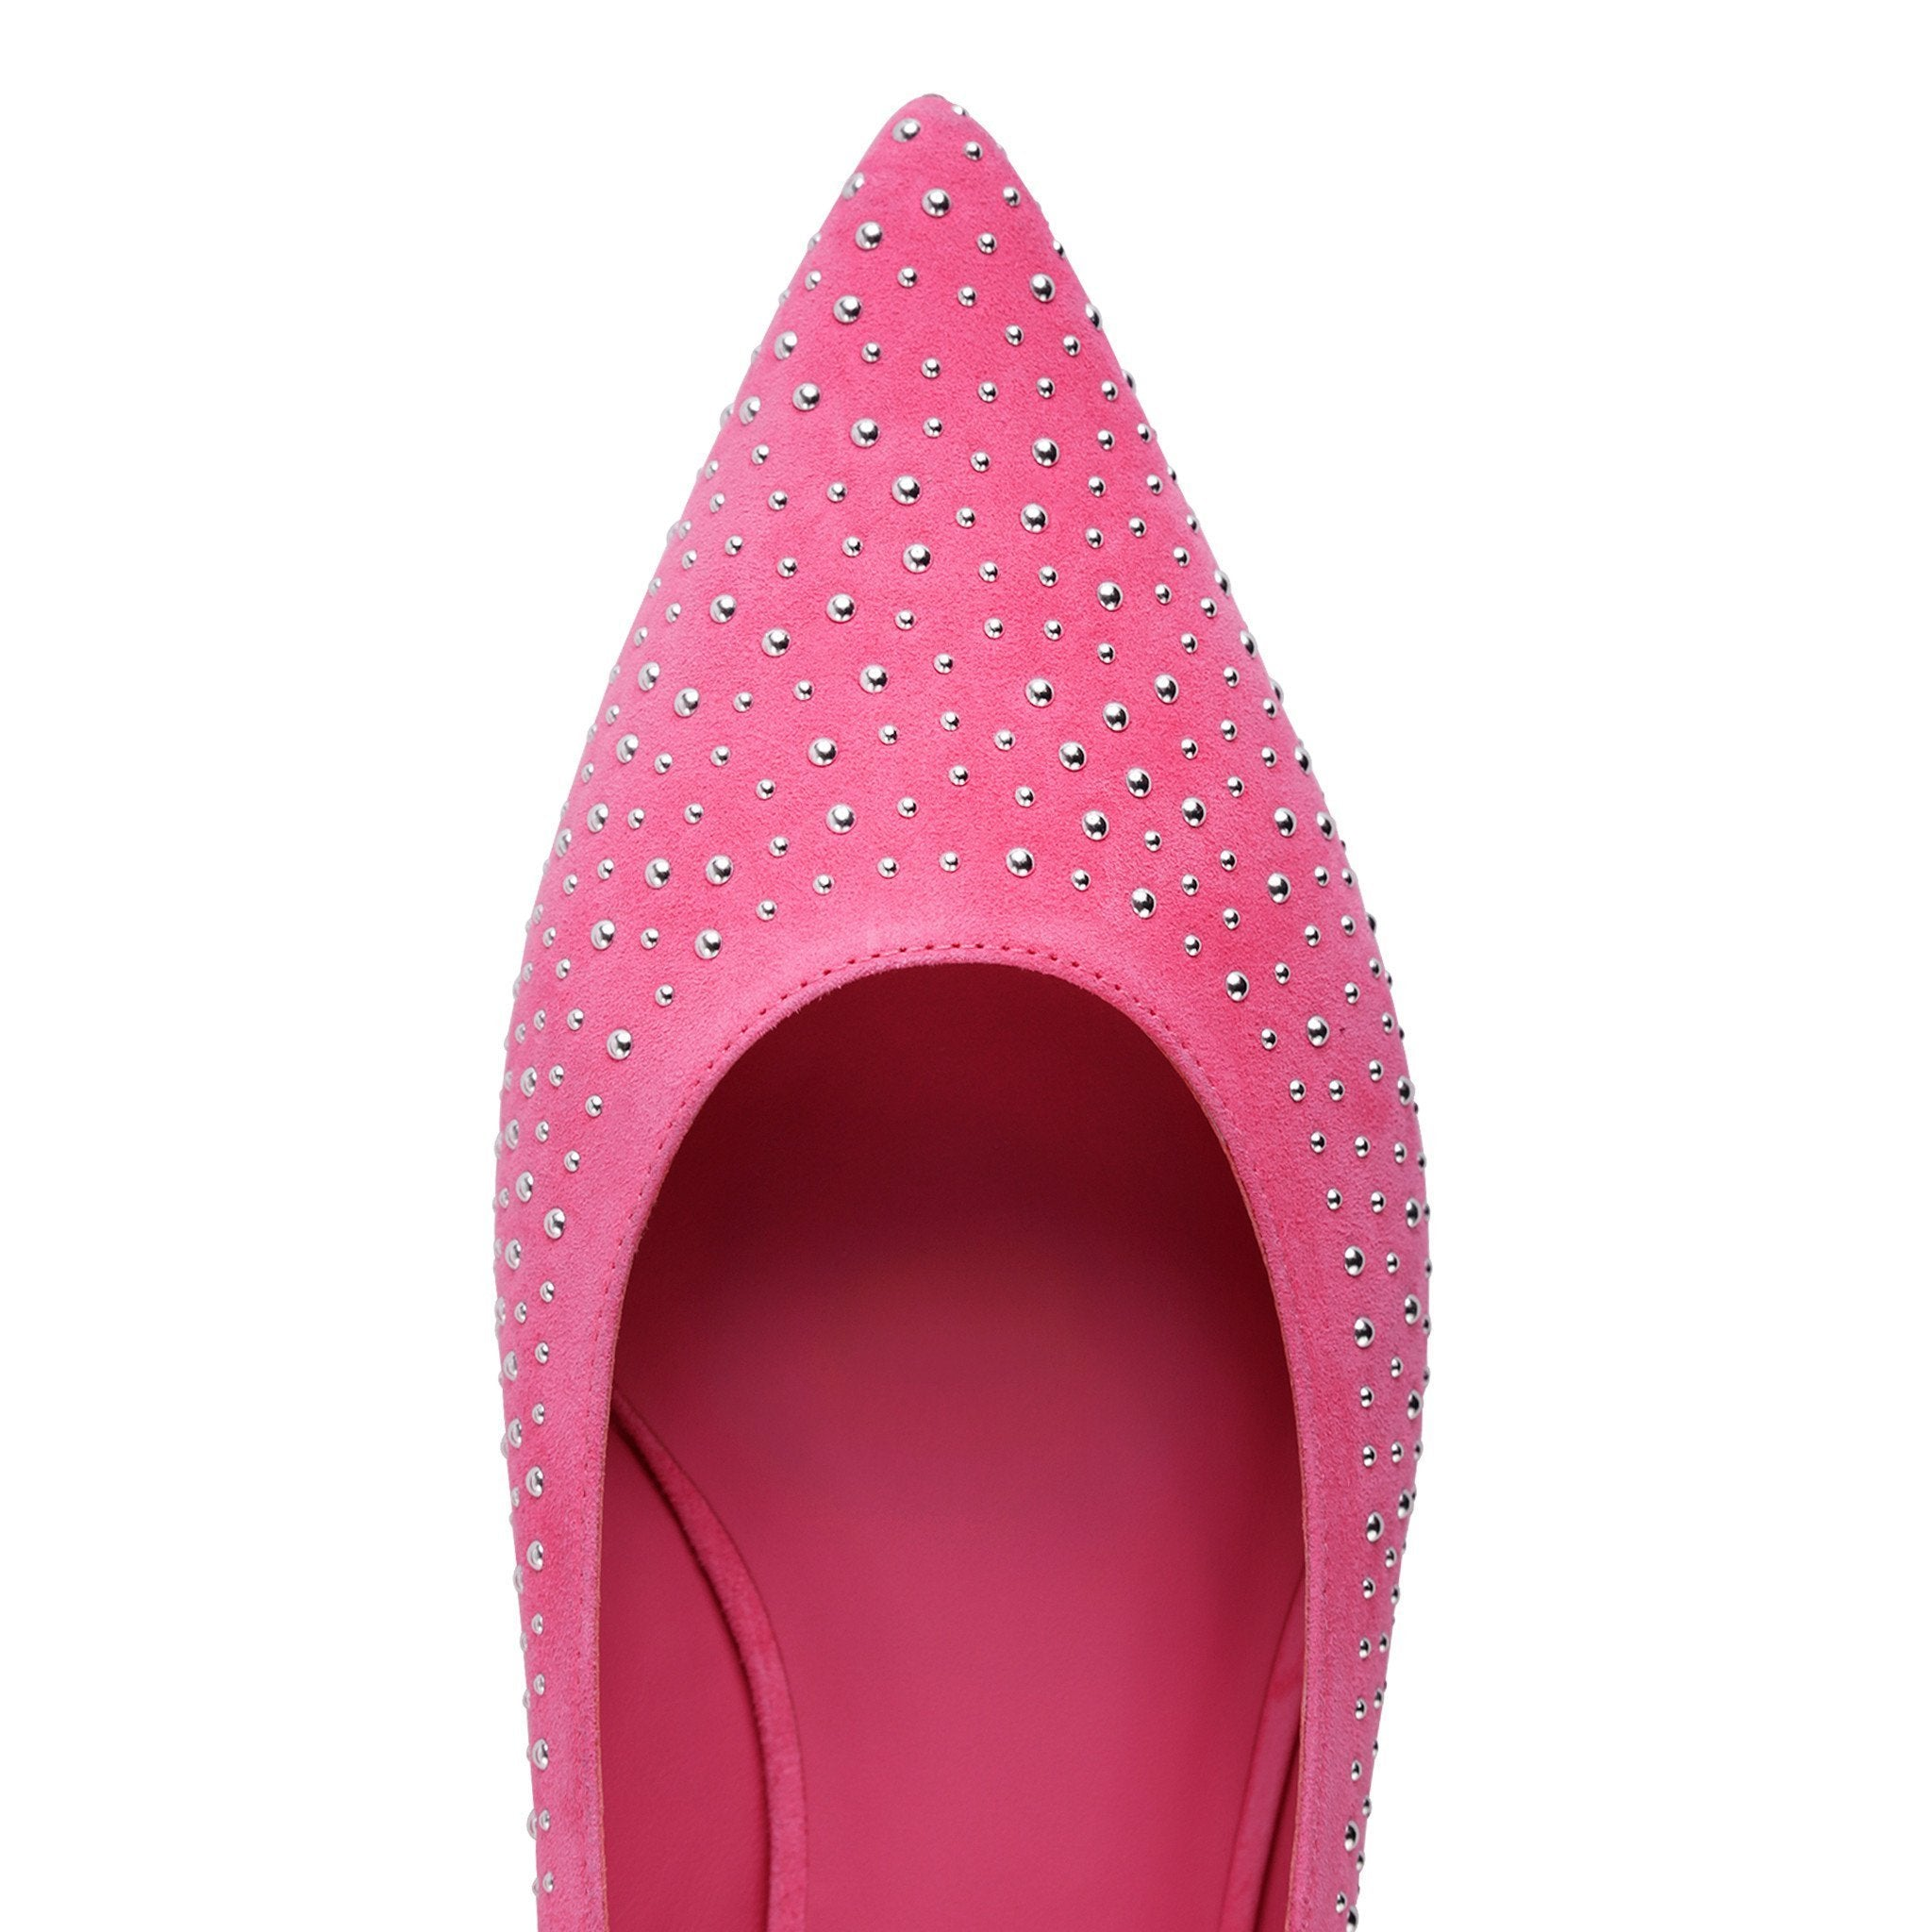 COMO - Velukid Epiphany Pink + Tiny Silver Studs, VIAJIYU - Women's Hand Made Sustainable Luxury Shoes. Made in Italy. Made to Order.